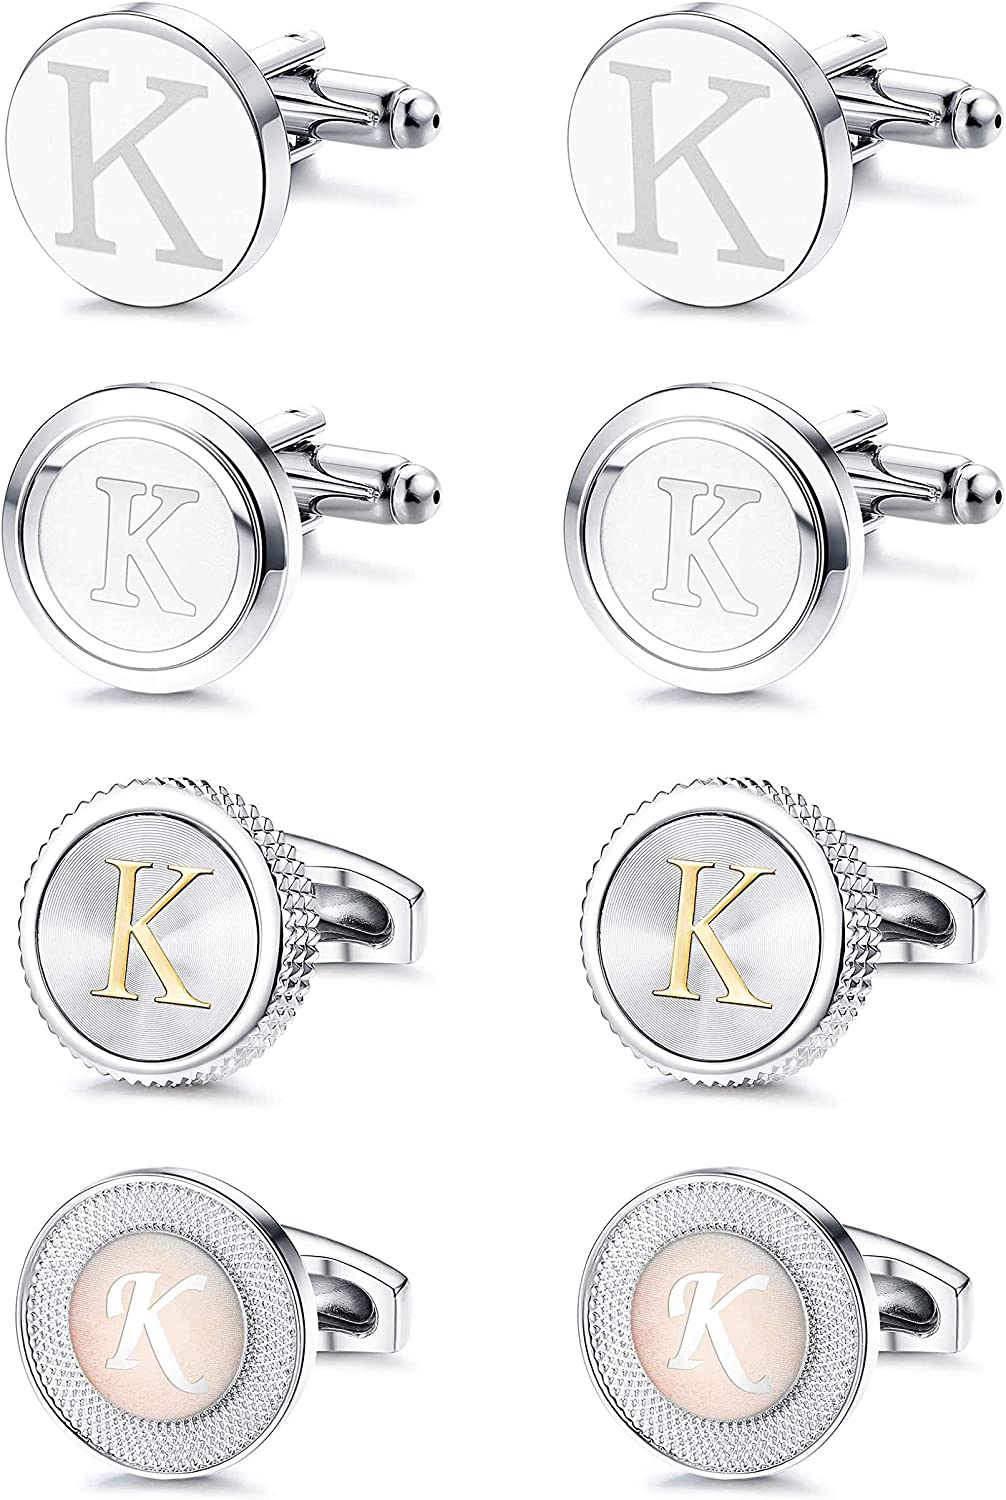 FIBO STEEL Limited time trial price 4 Selling and selling Pairs Mens Letter Engraved Shirts Initial Cufflinks